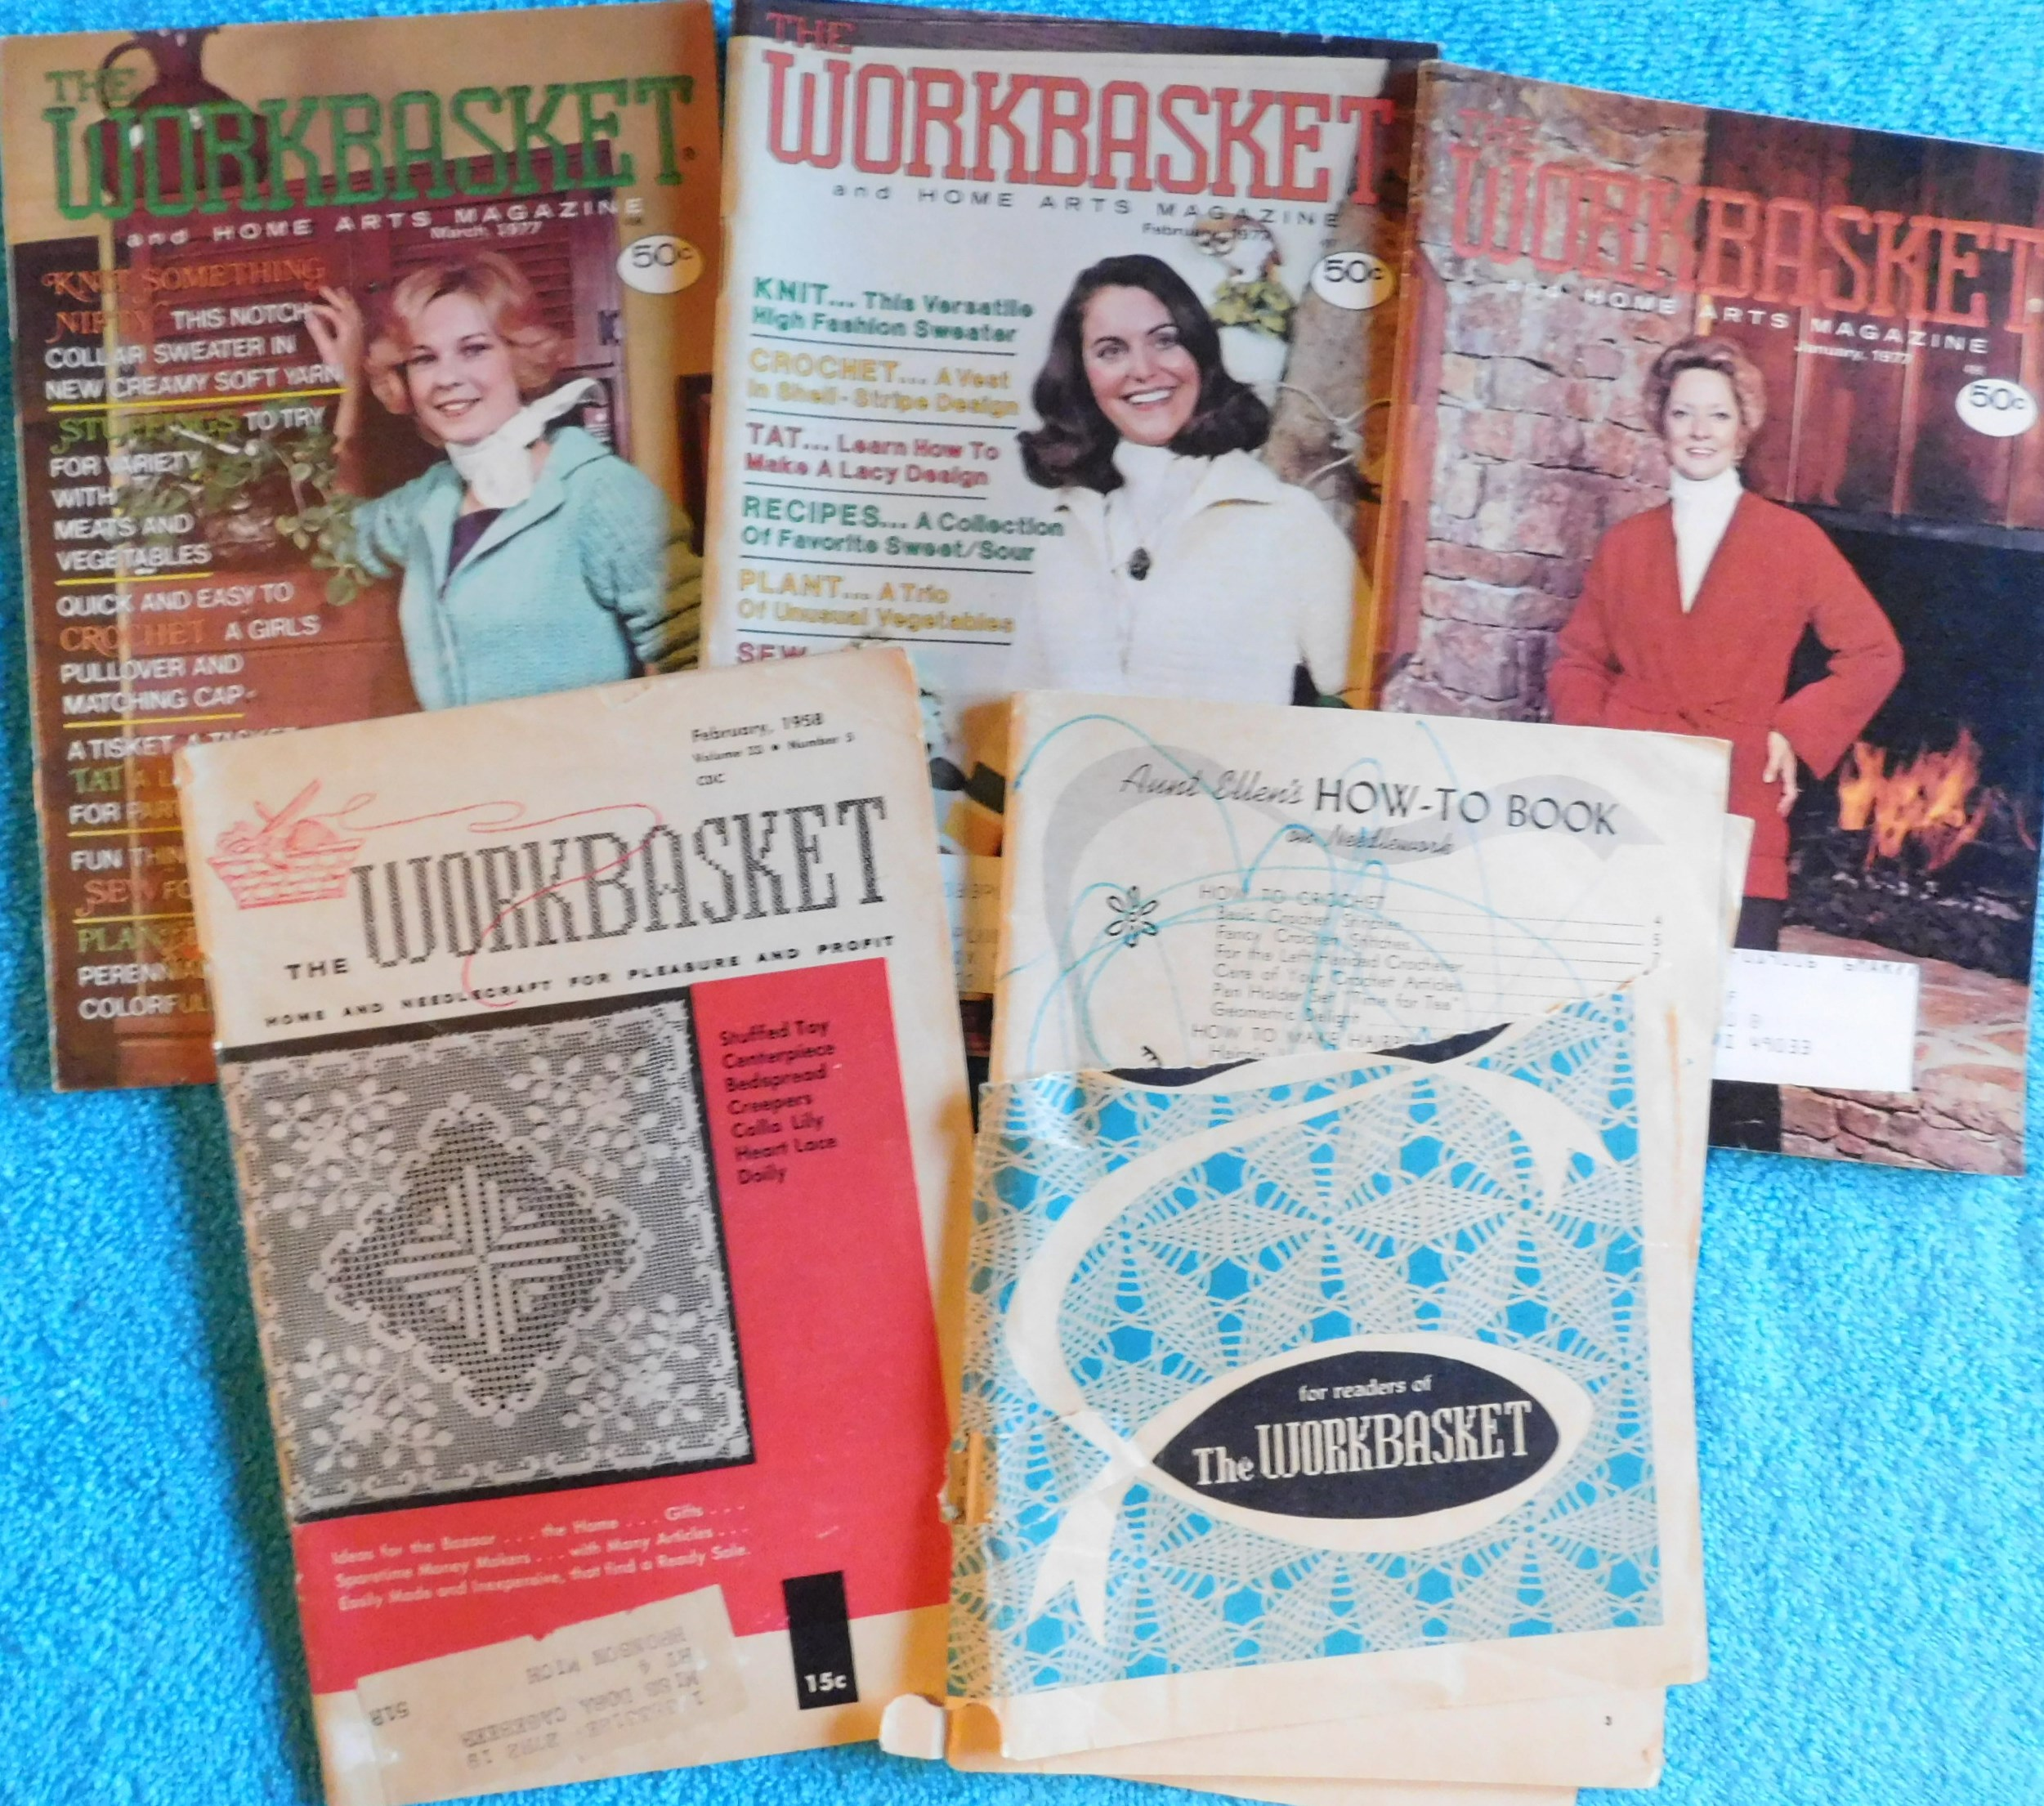 Lot of 5 The Workbasket Magazines from 1954, 1958 & 1977 | eBay